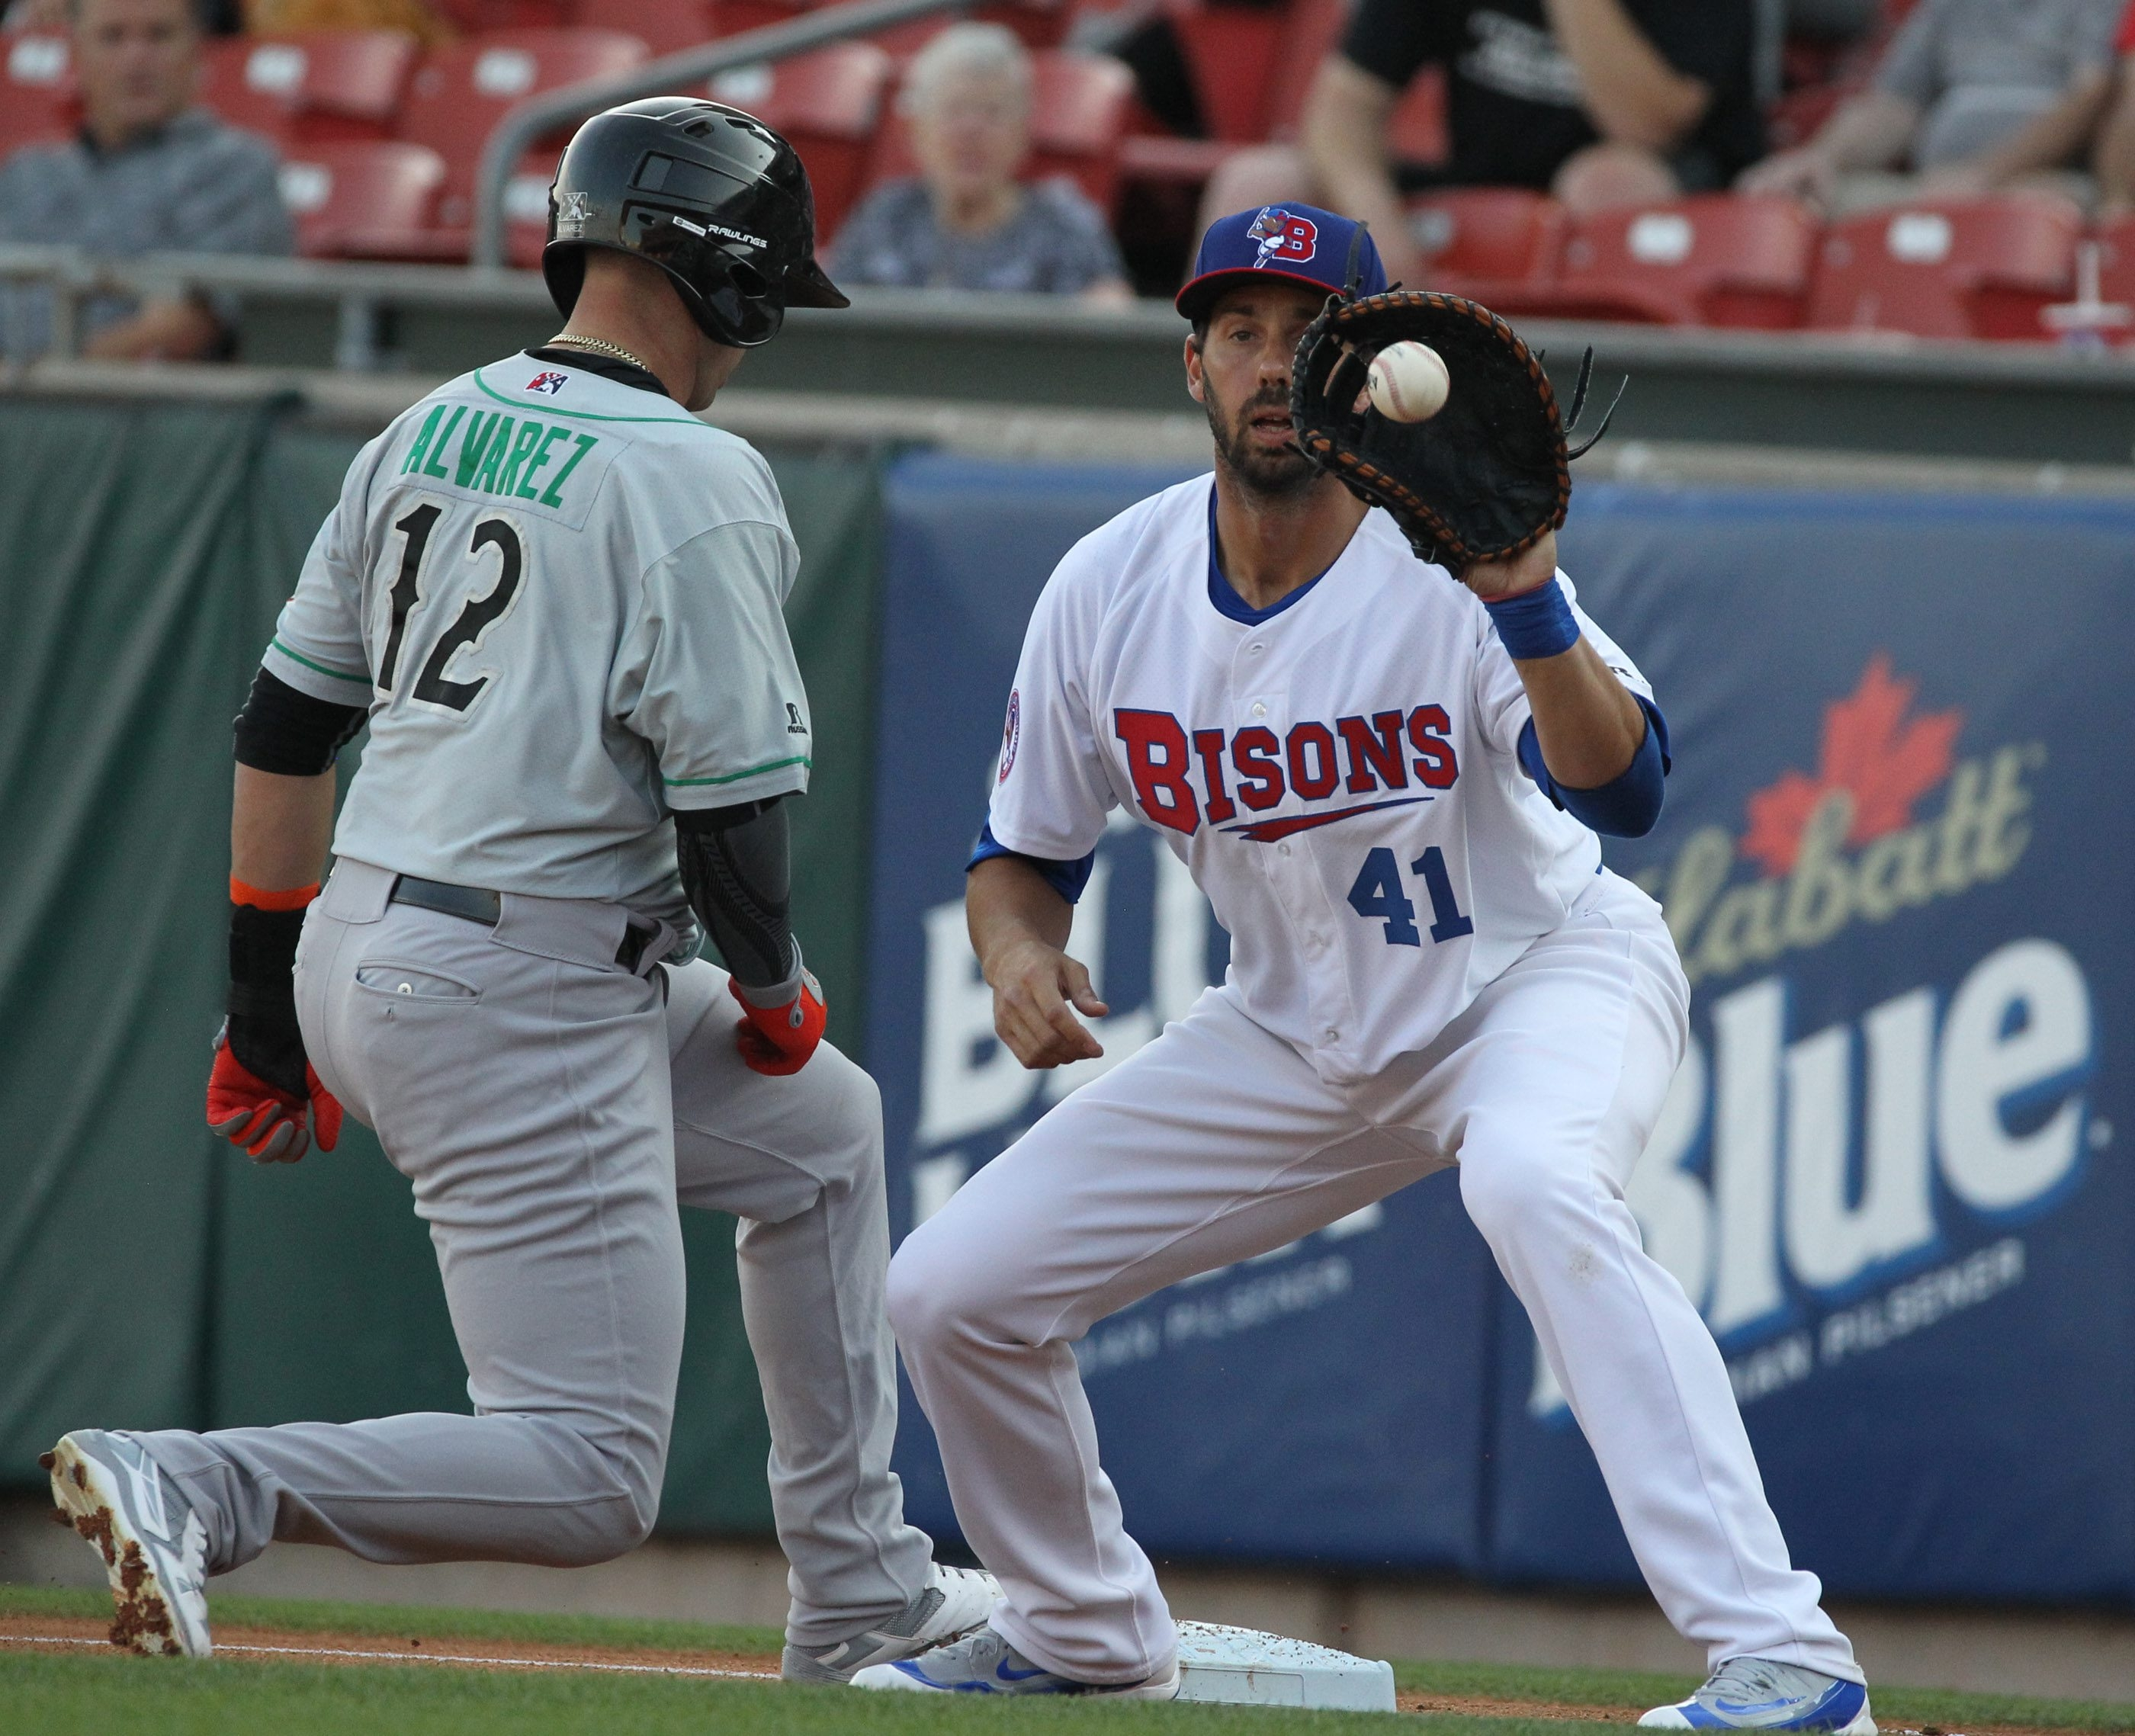 First baseman Chris Colabello and the Bisons return home on Tuesday to face Indianapolis.